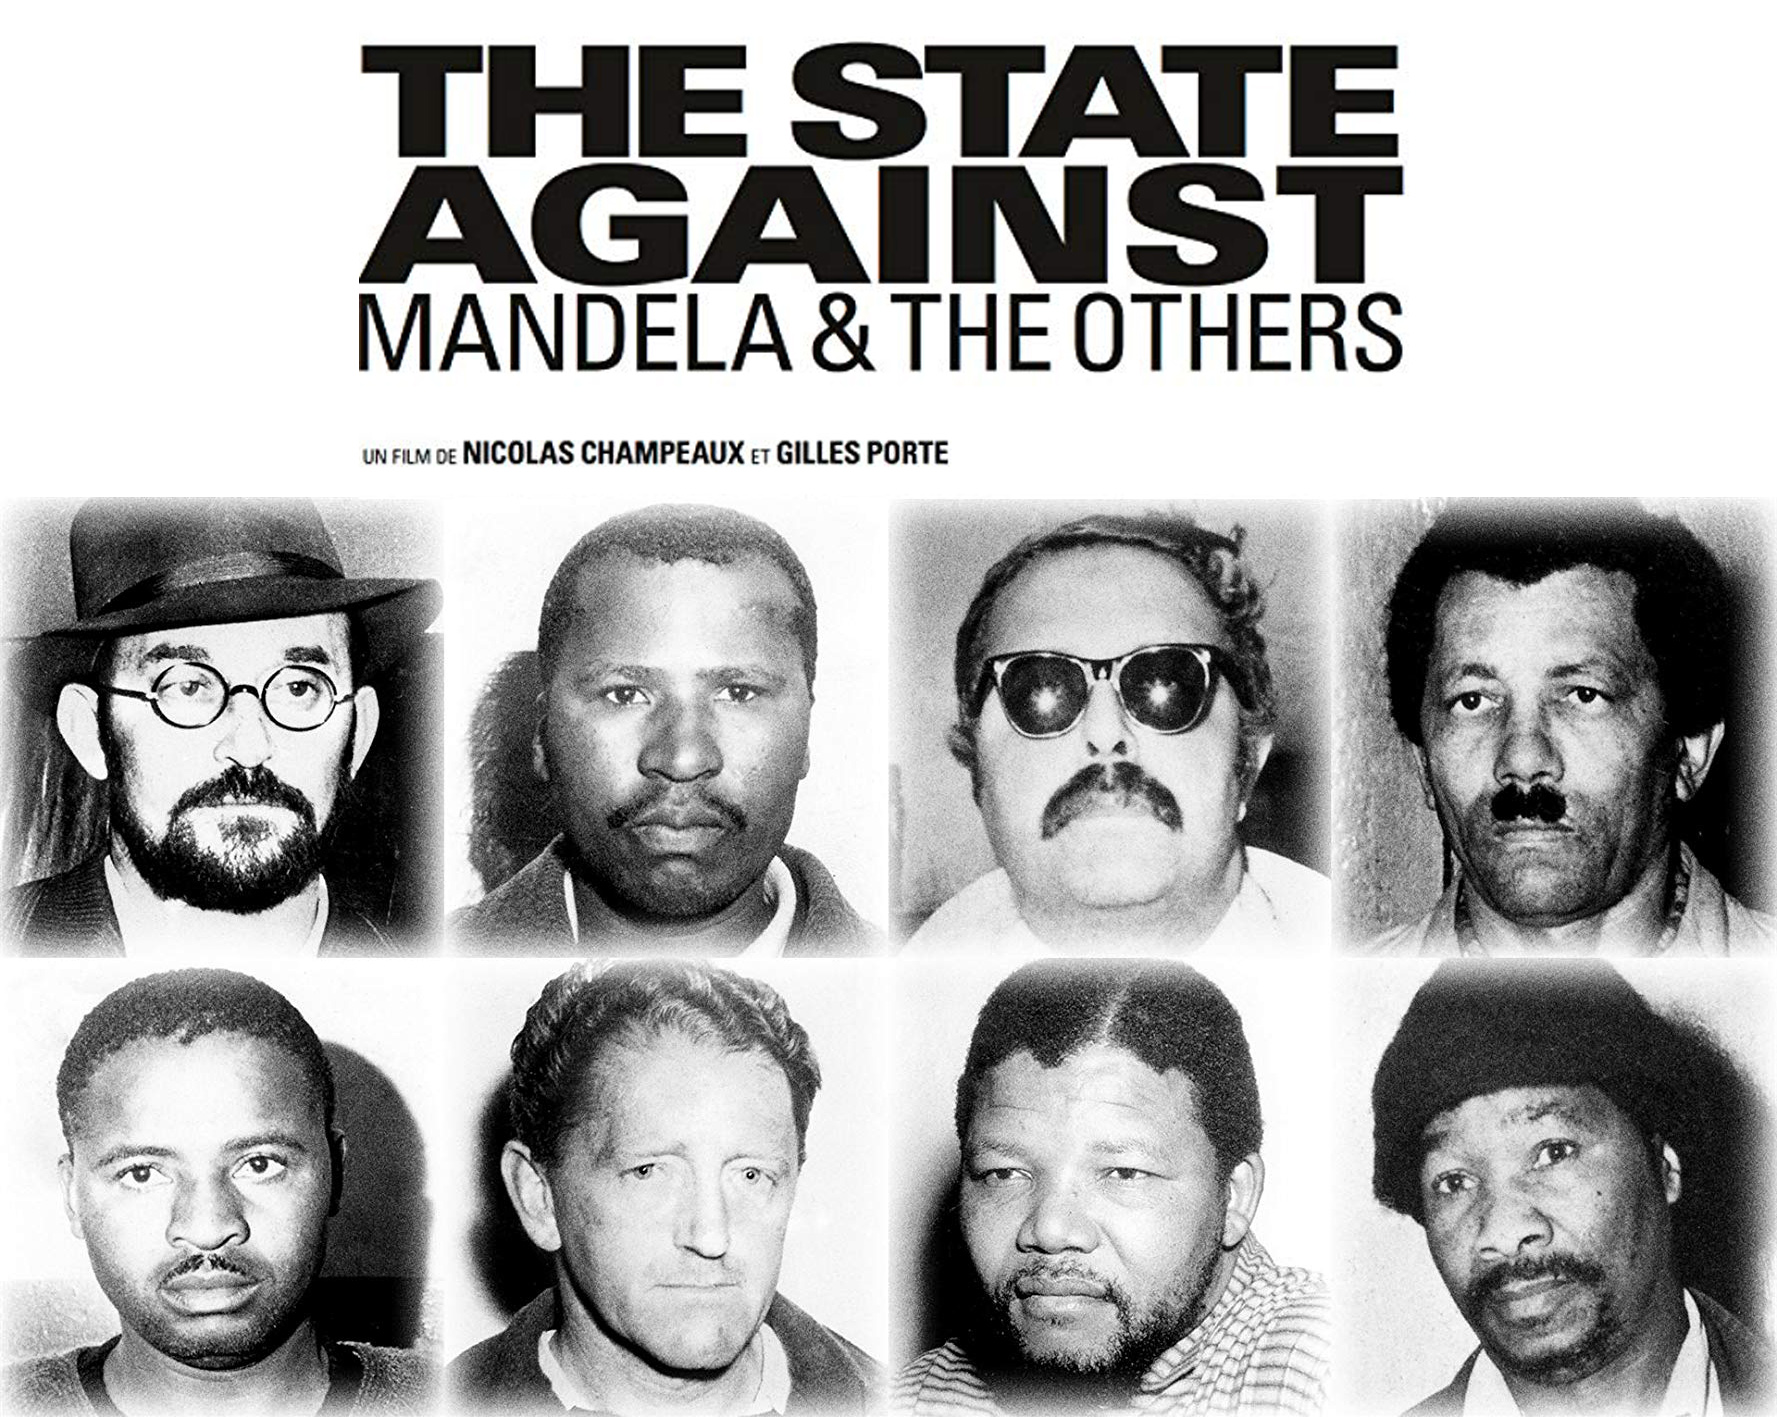 Blog. Cork Film Festival 'The State Against Mandela and the Others', a documentary by Nicolas Champeaux and Gilles Porte.